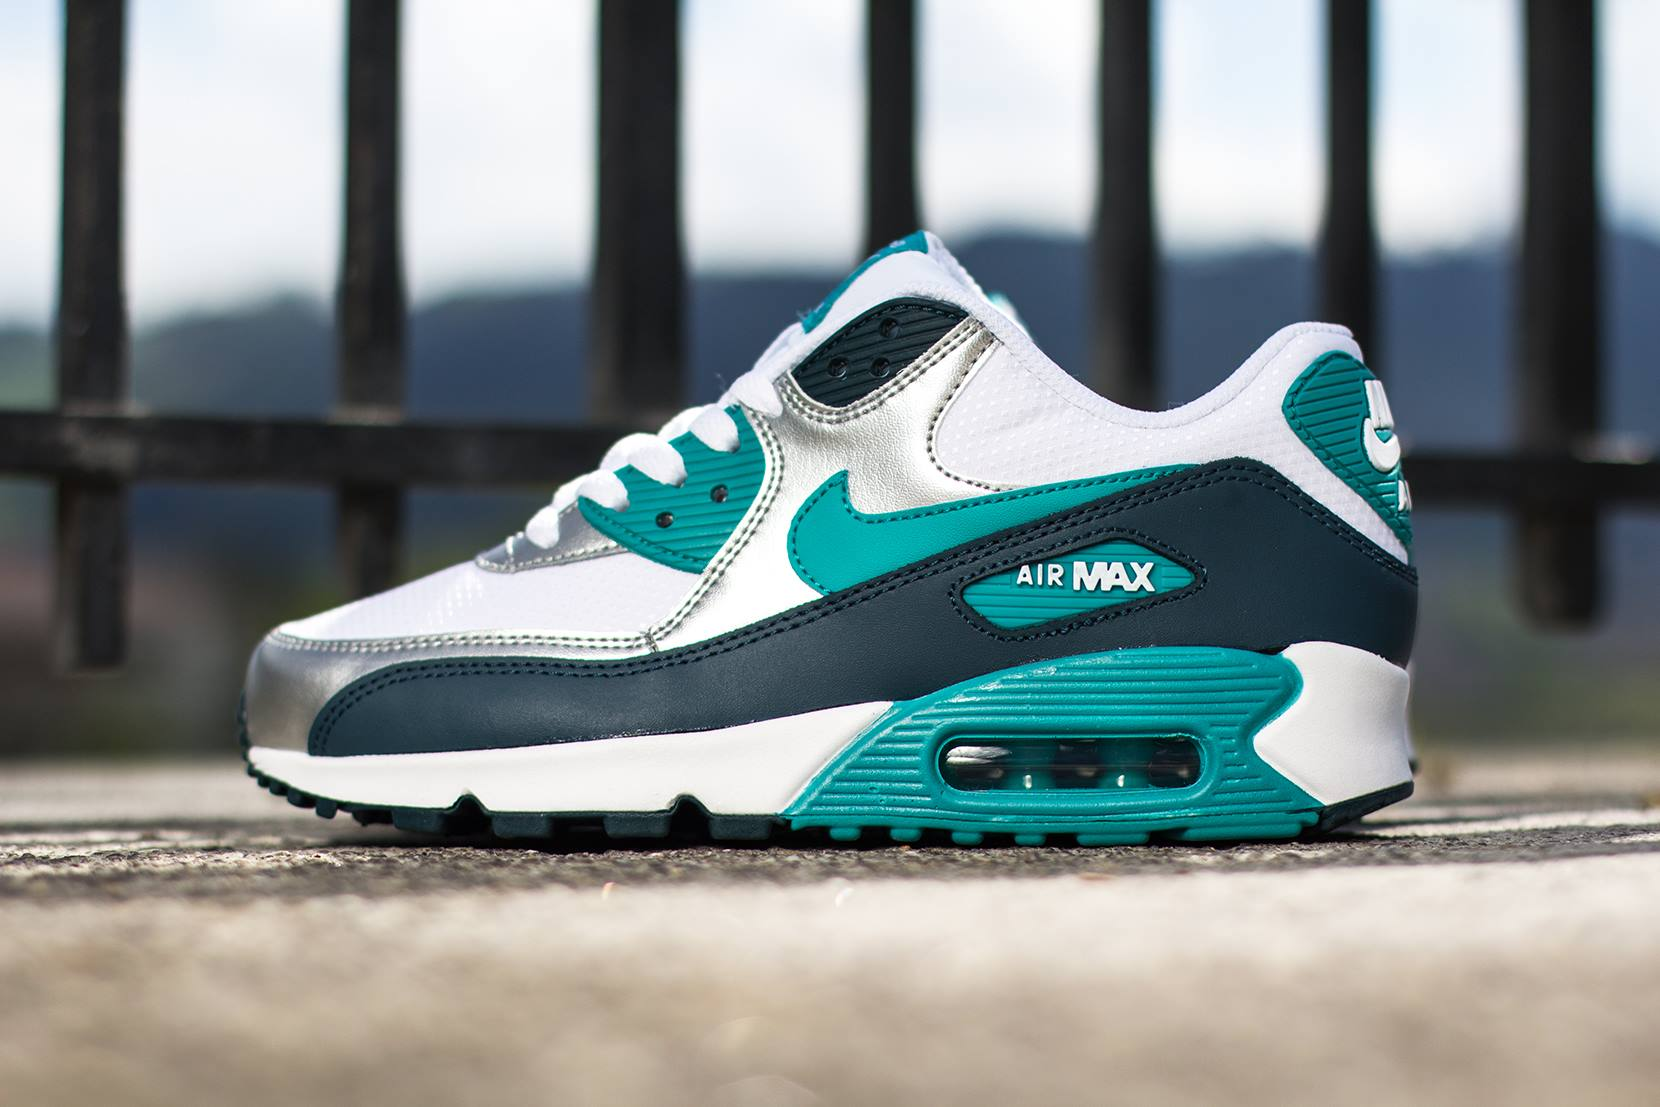 nike womens air max 90 white turbo green nightshade. Black Bedroom Furniture Sets. Home Design Ideas